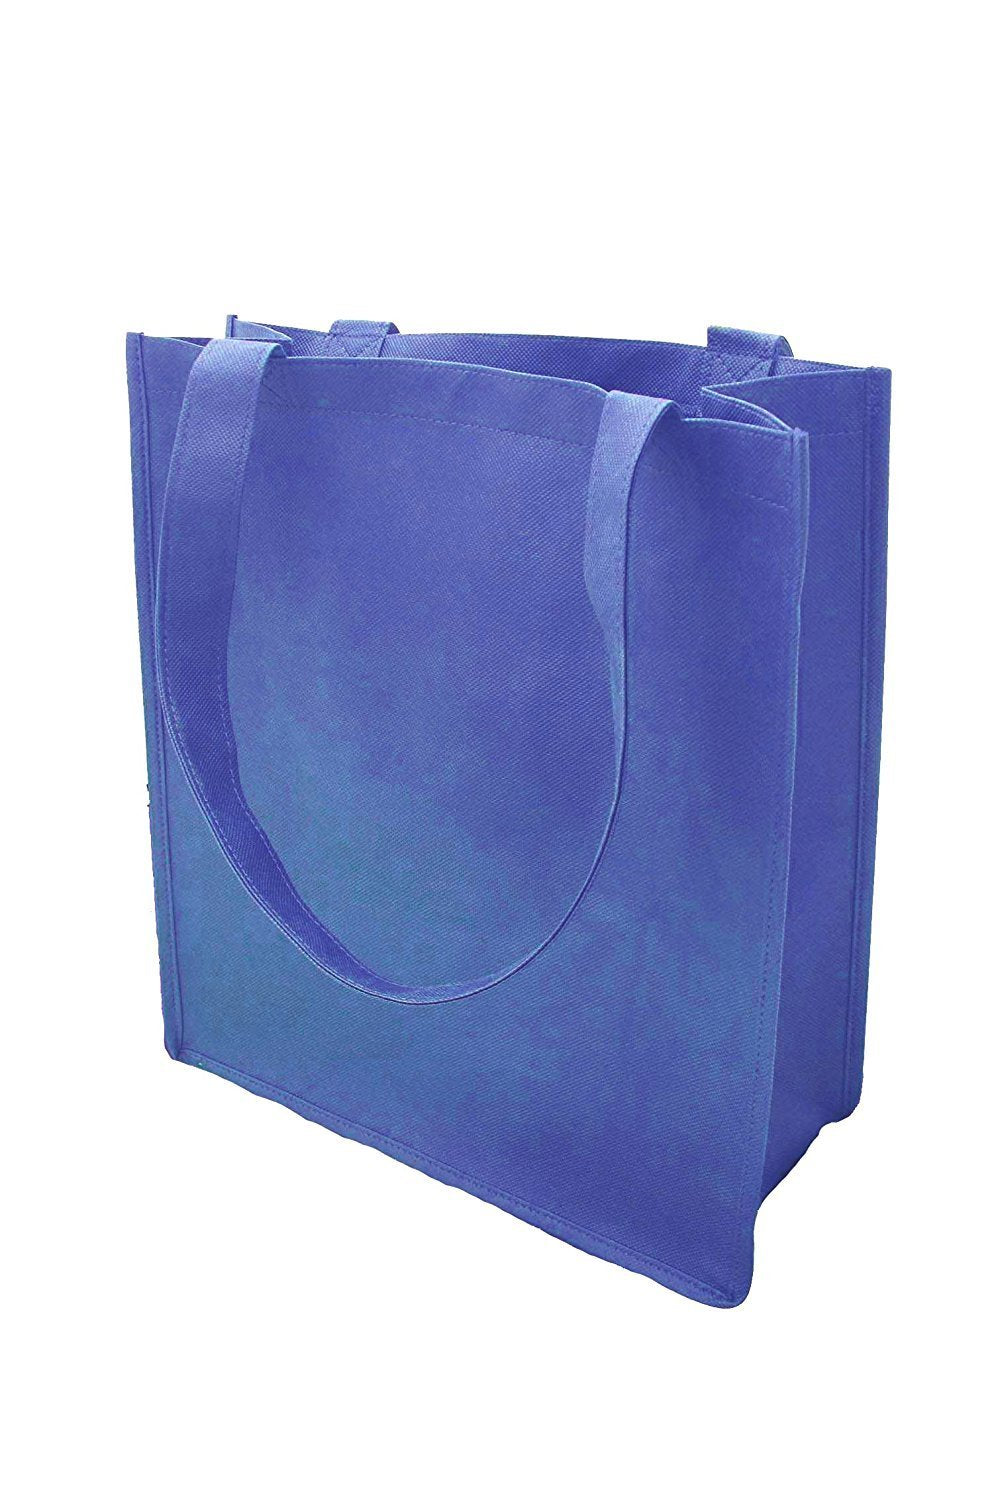 "Pack of 3 ImpecGear 15"" Tote W/ 6 Gusset Grocery Bag Recycled Reusable Shopping Tote Shoulder Bag Luggage"